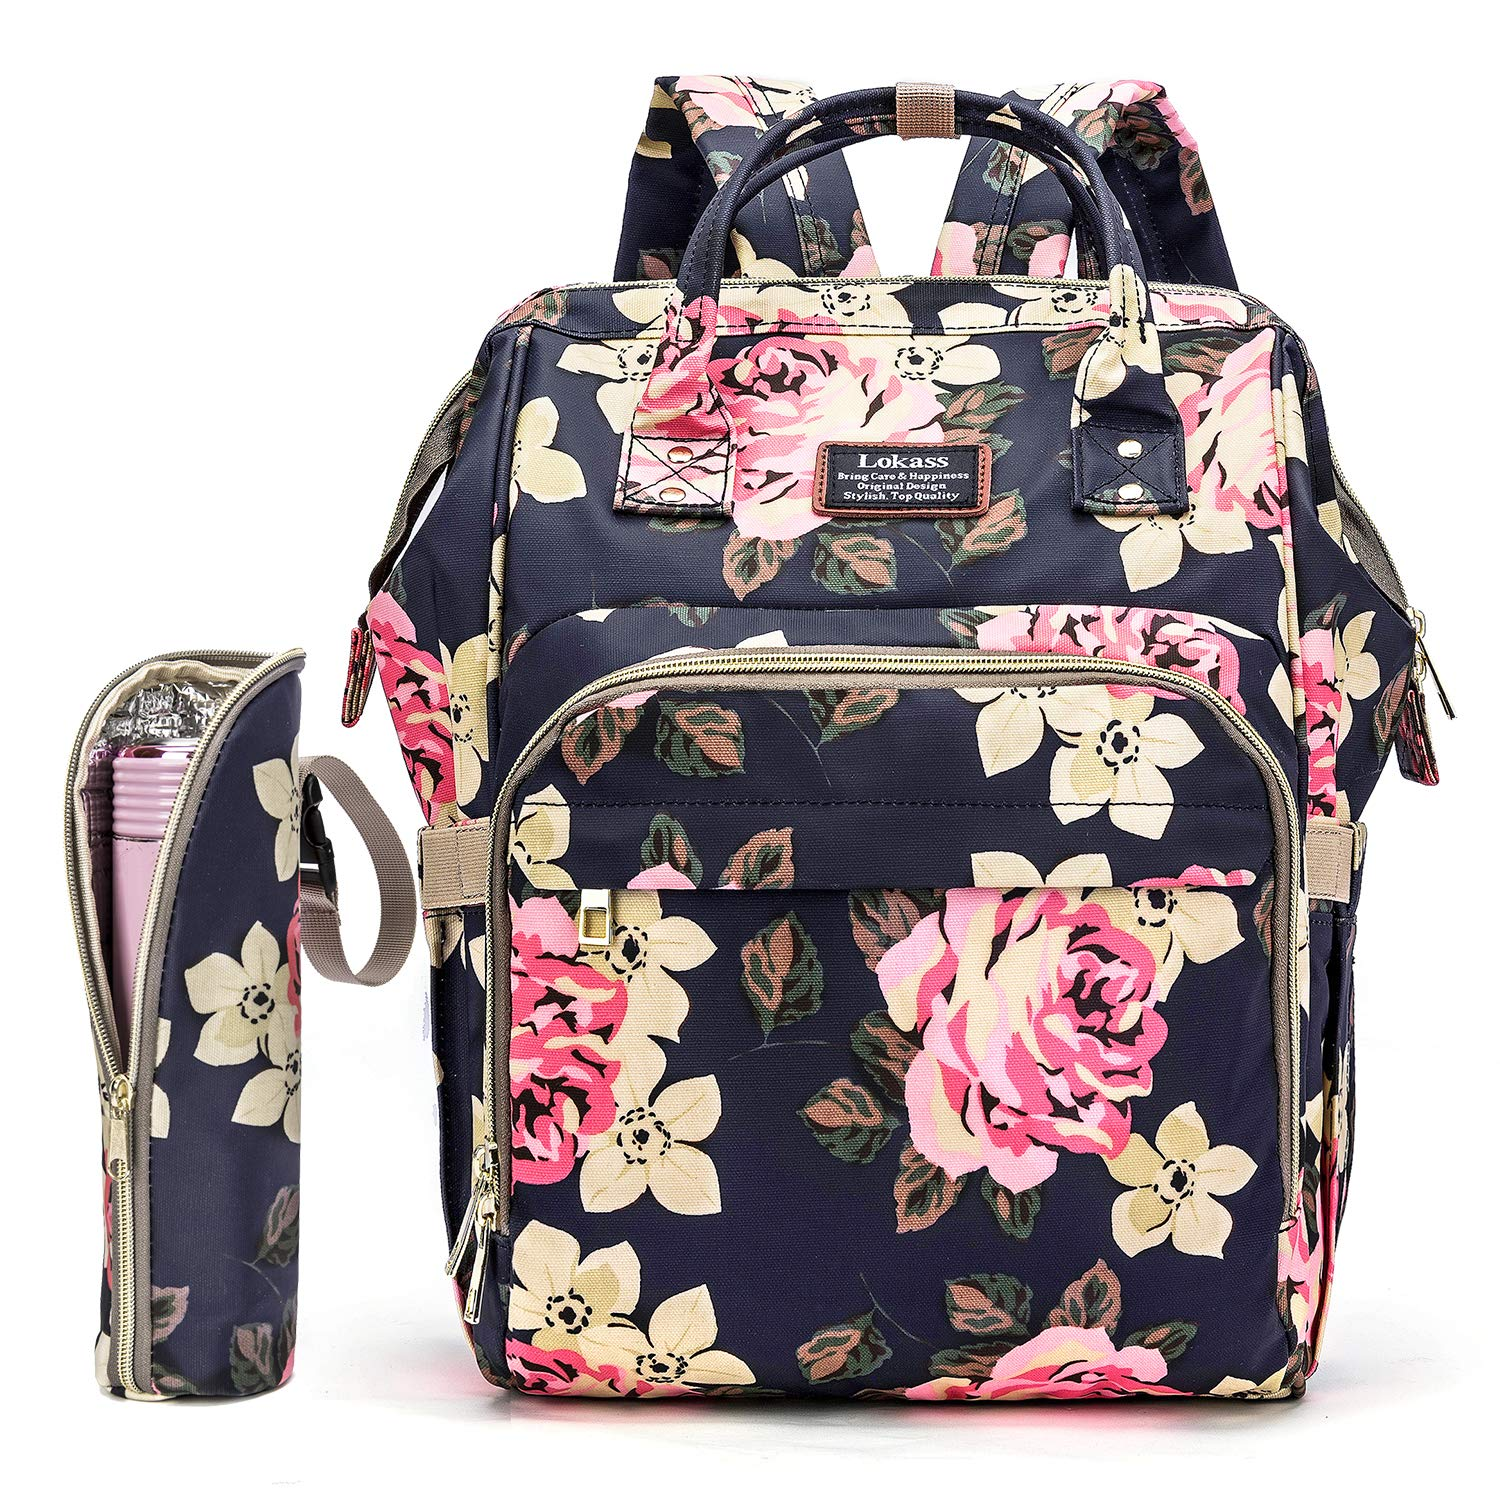 Diaper Bag Backpack Floral Baby Bag Water-resistant Baby Nappy Bag With Insulated Water Bottle Bag/Changing Pad For Women/Girls/Mum (Flower Pattern) by Srotek